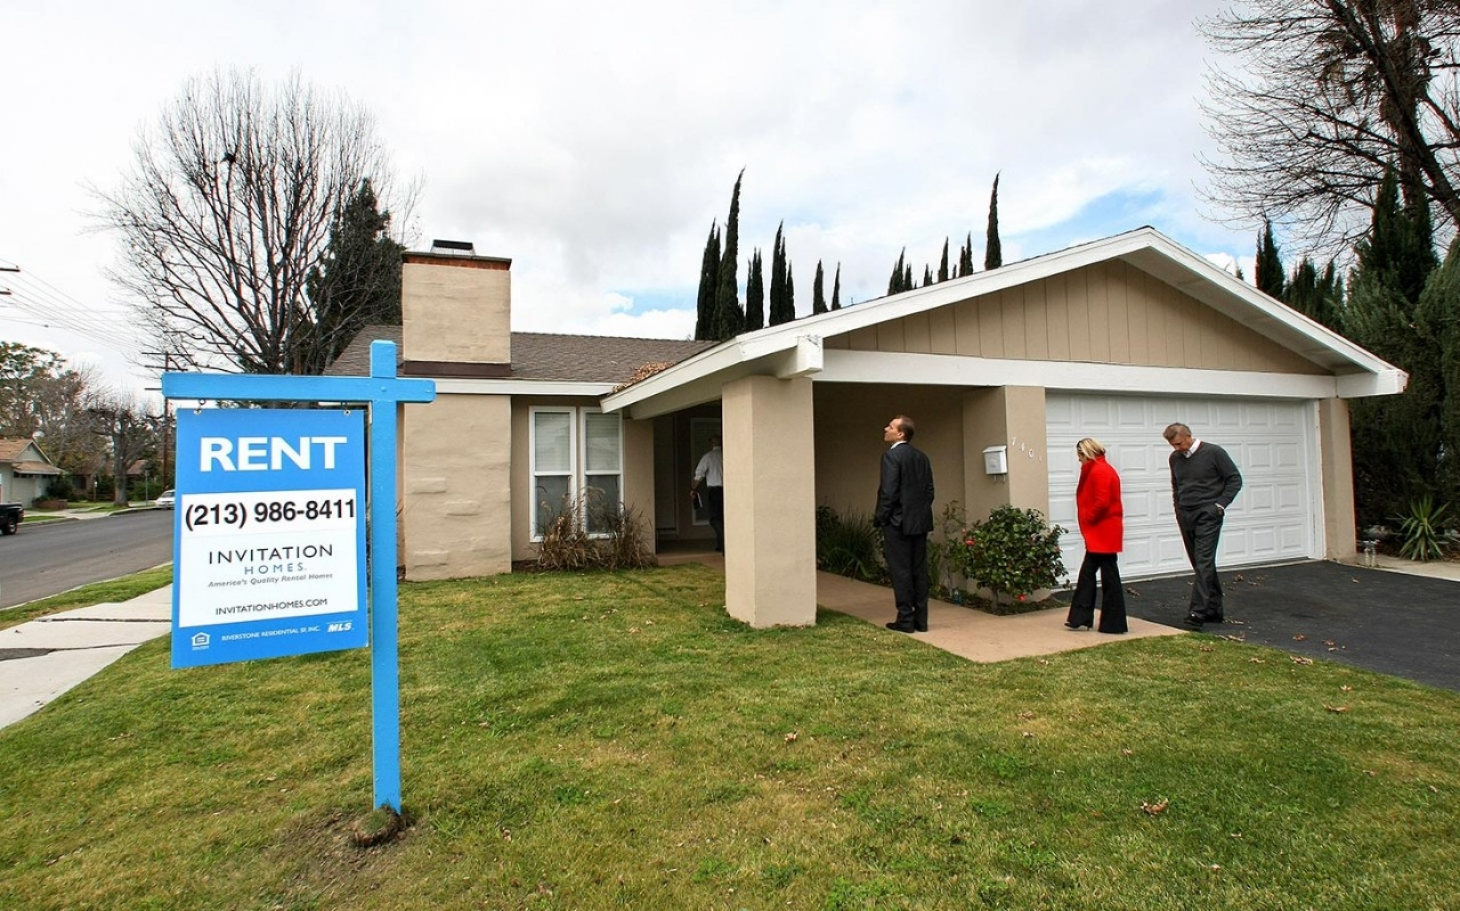 Public pensions invest big in blackstone rentals al for American family homes for rent